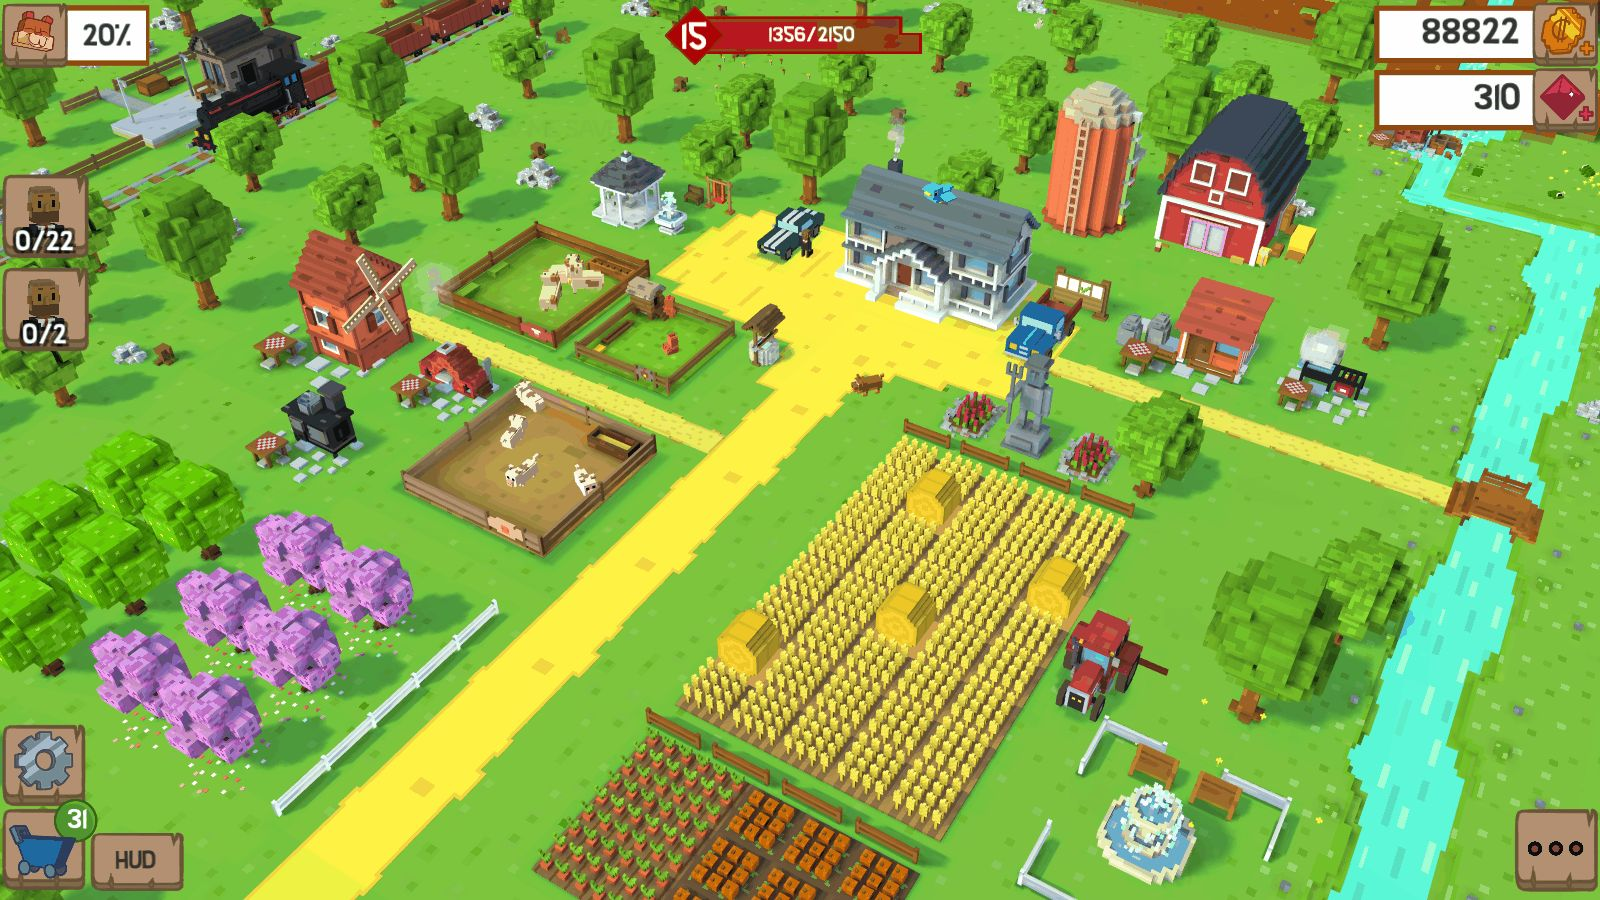 Voxel Farm Manager 'Blocky Farm' Will Soft Launch At The End Of May